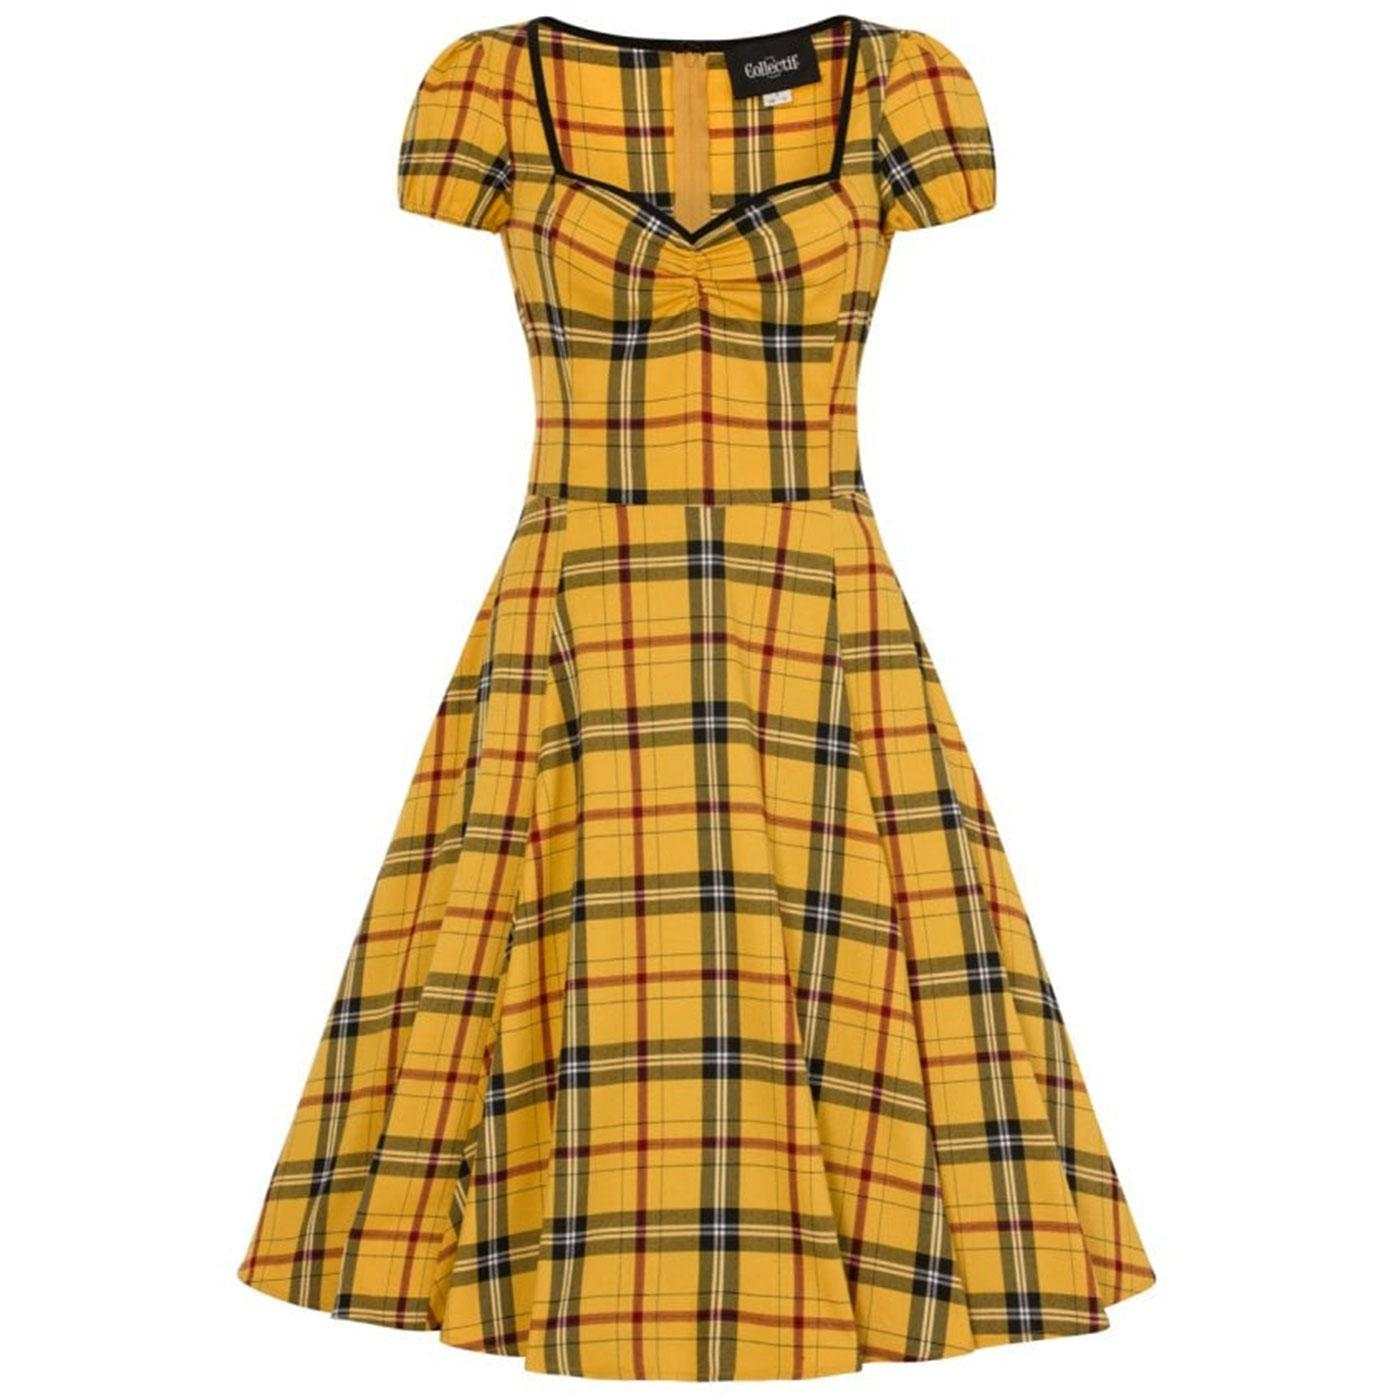 Mimi COLLECTIF Retro 50s Clueless Check Doll Dress